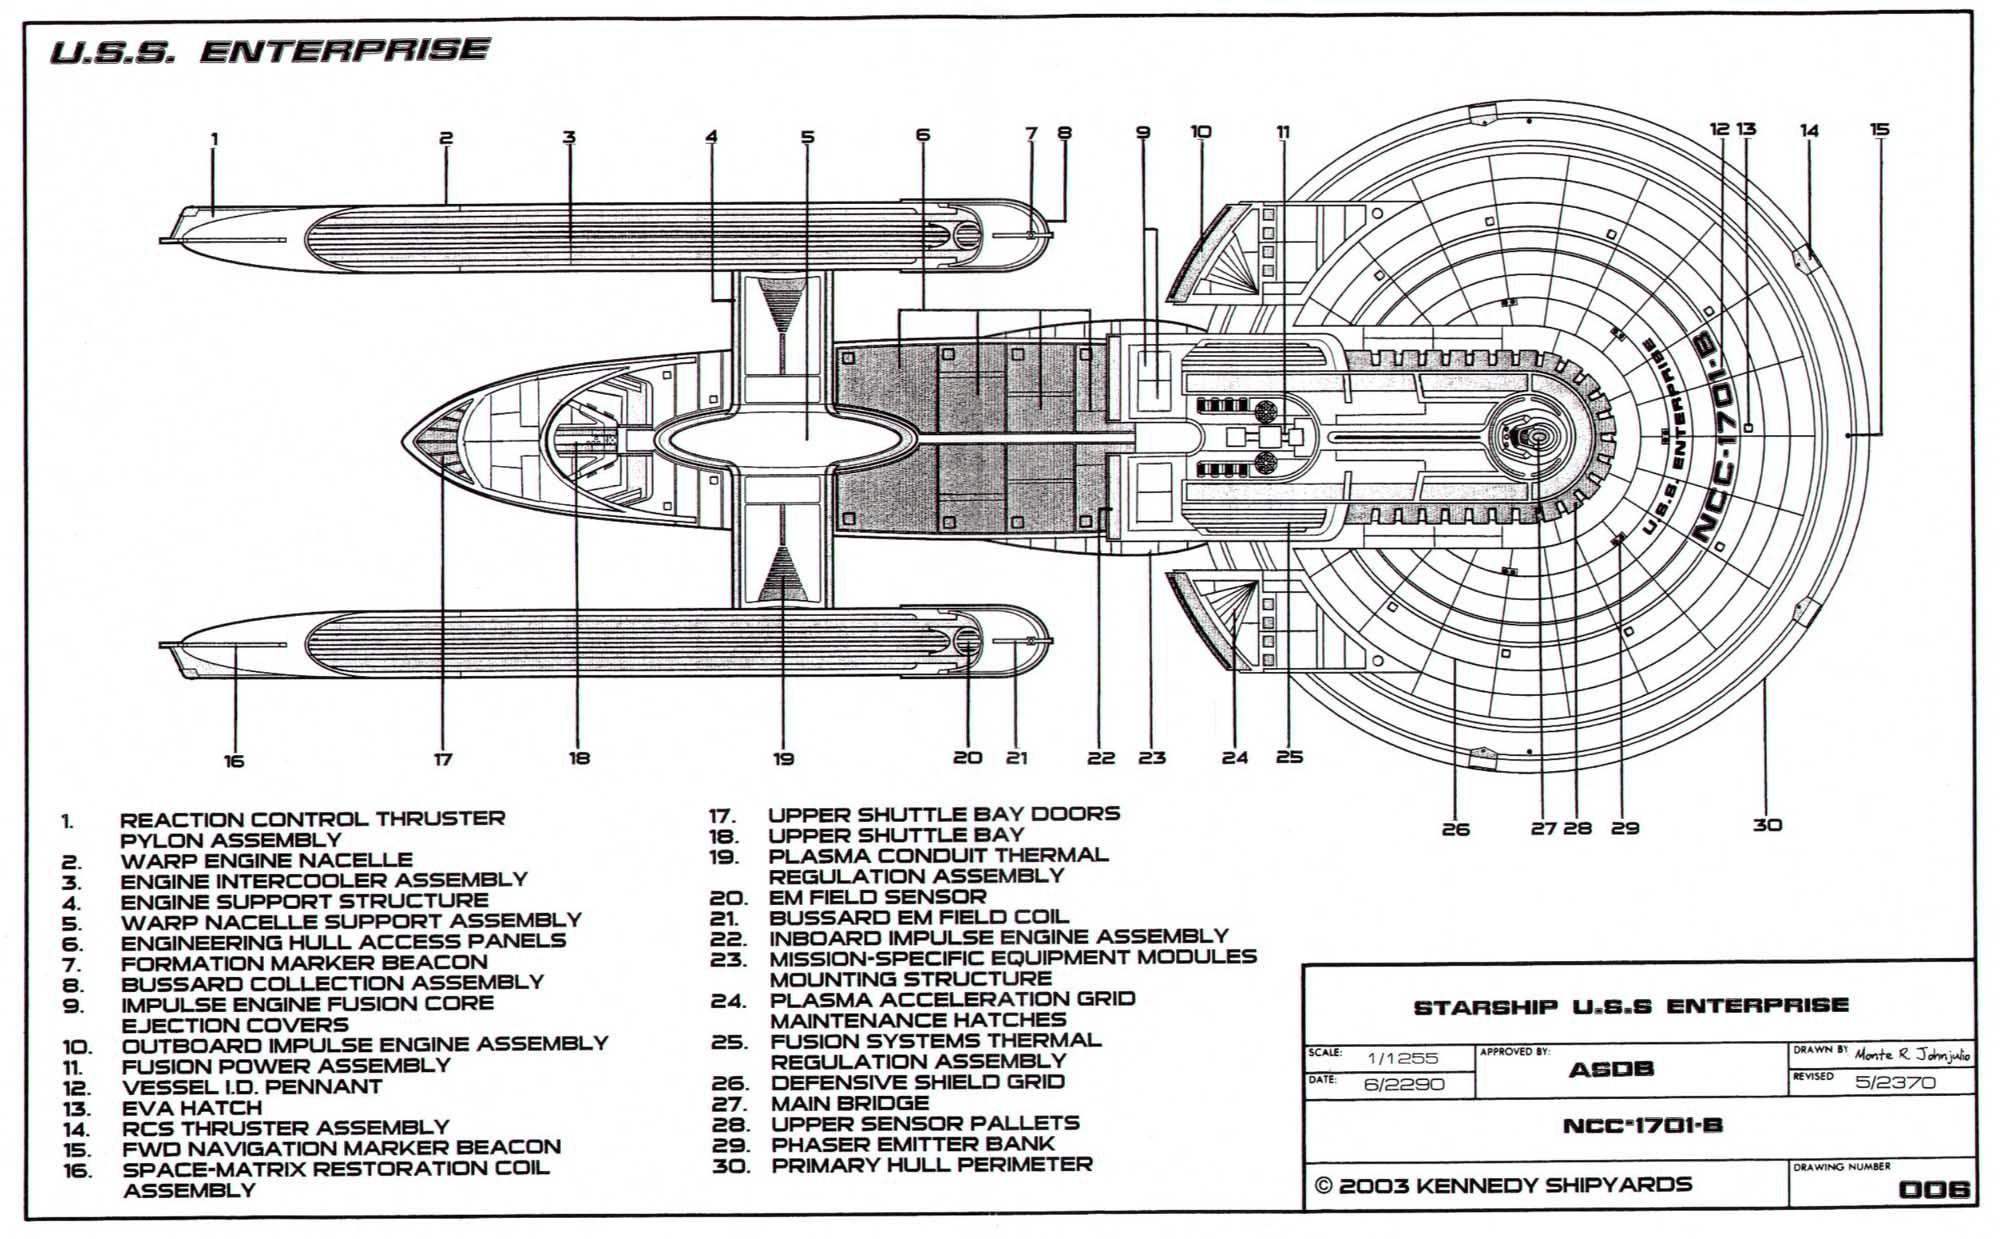 Dorsal Side Schematic Of The Excelsior Class Enterprise